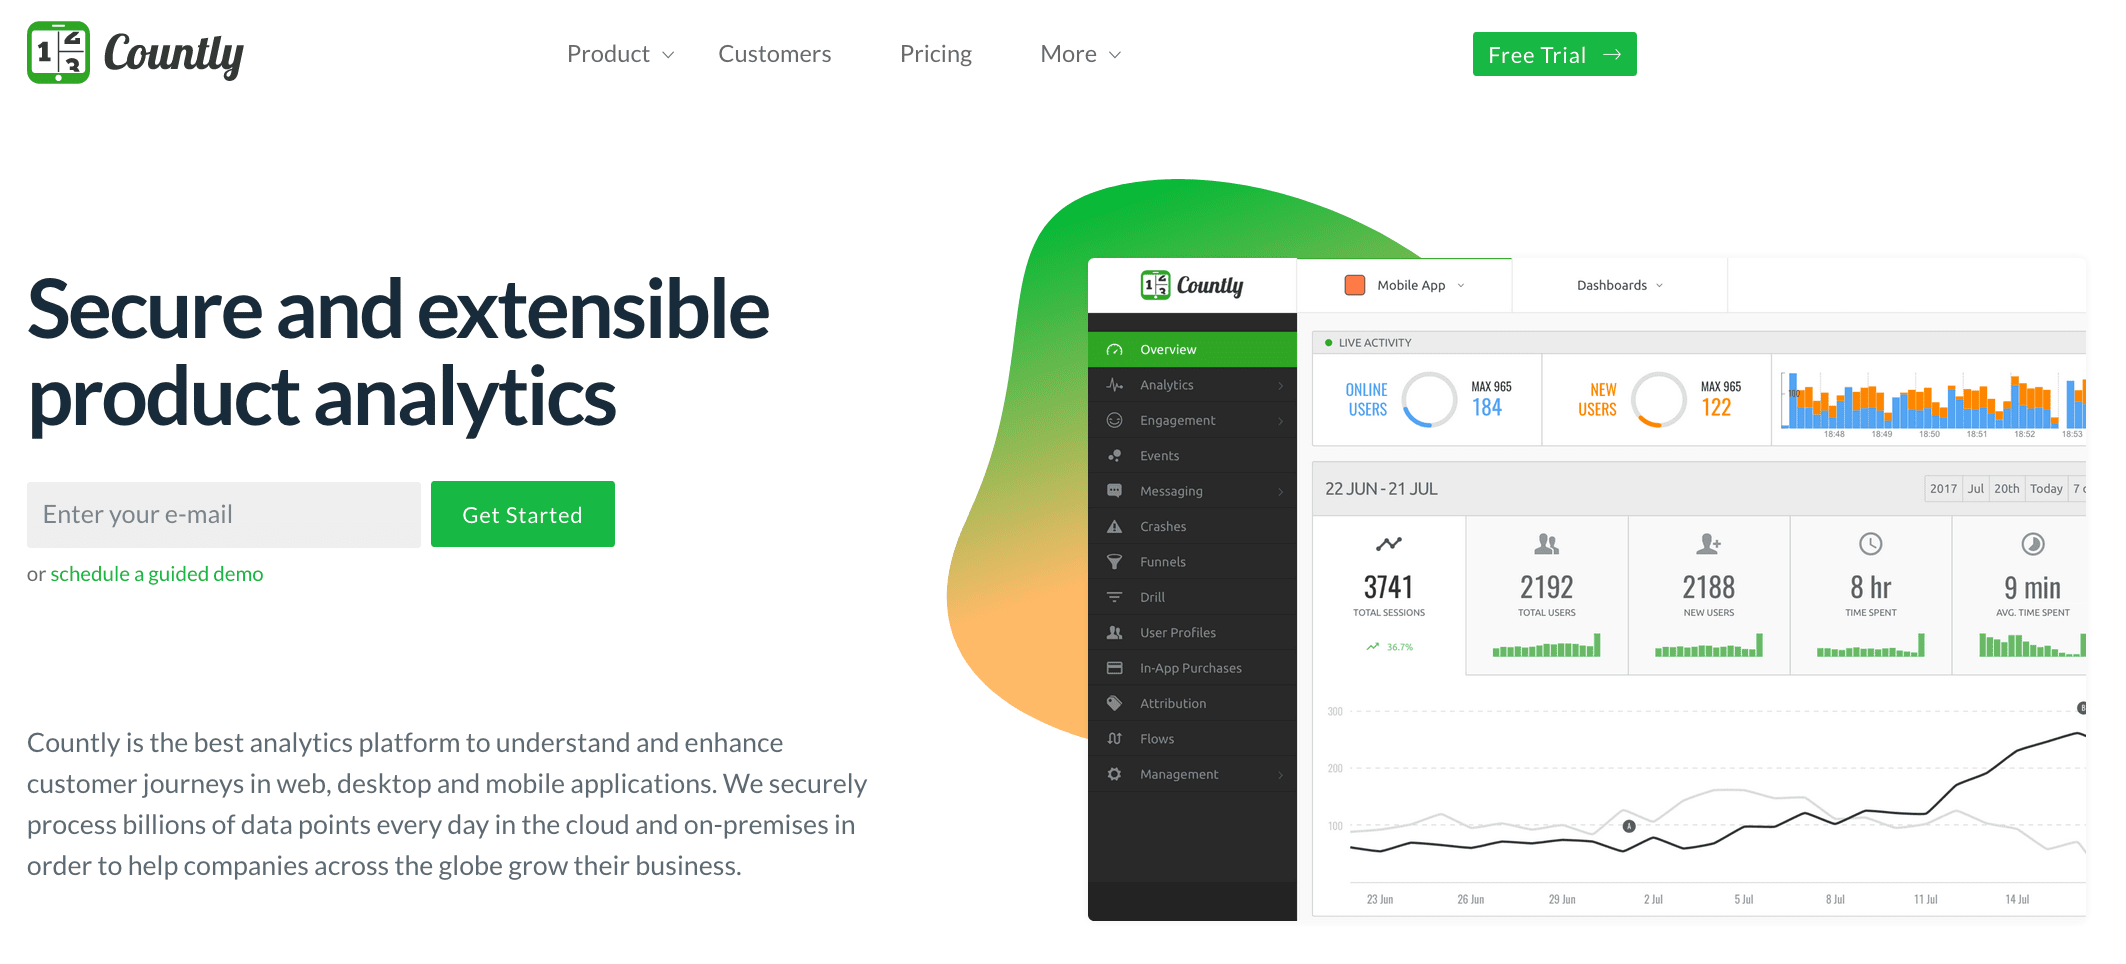 Countly - an open-source analytics platform that's privacy-focused